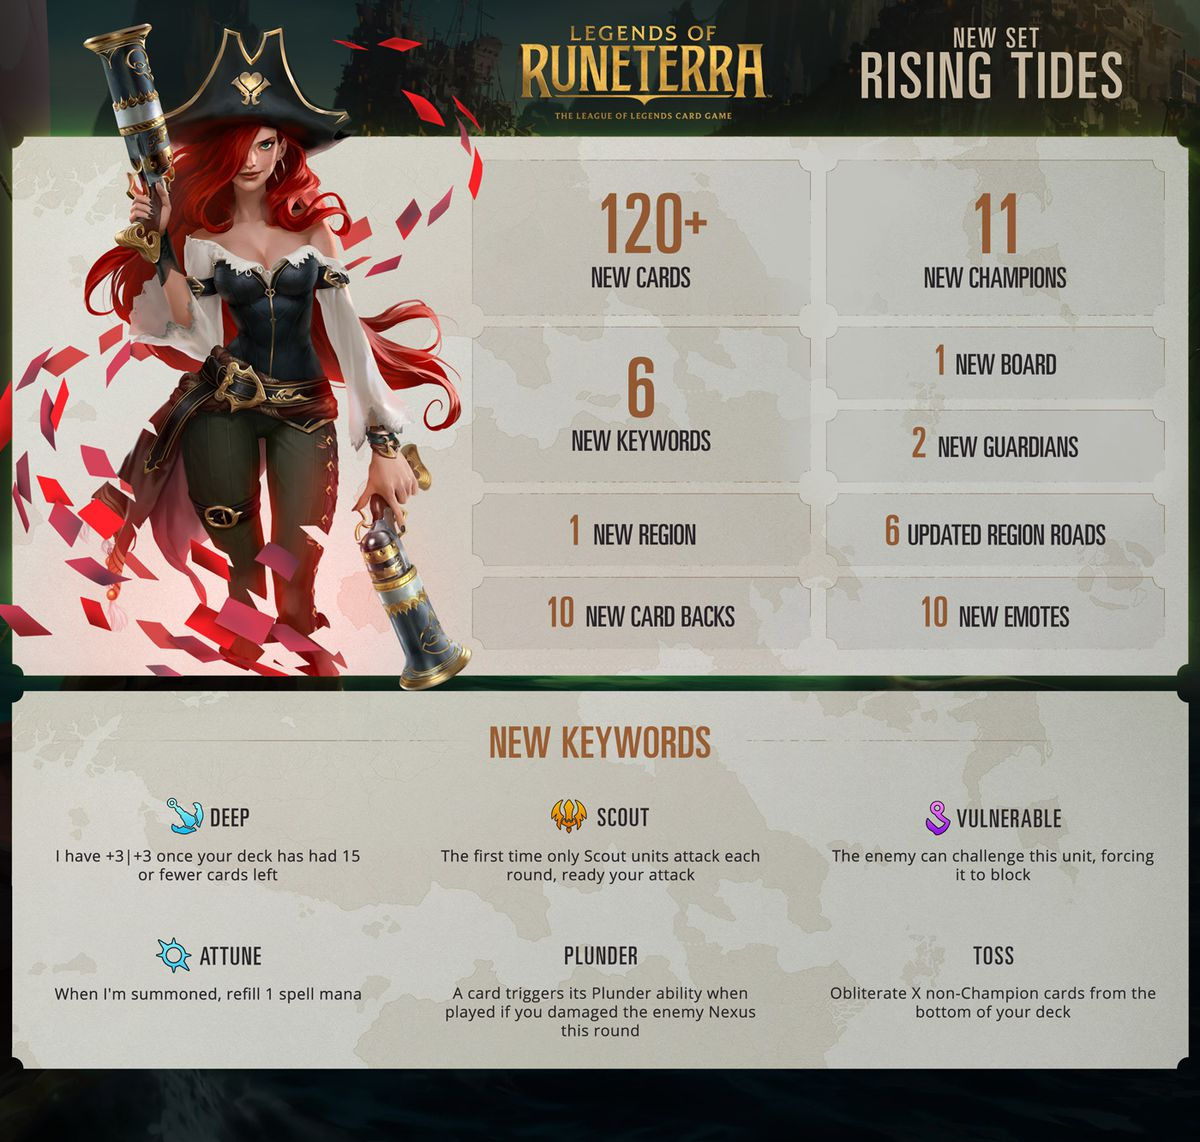 Legends of Runeterra Rising Tides set